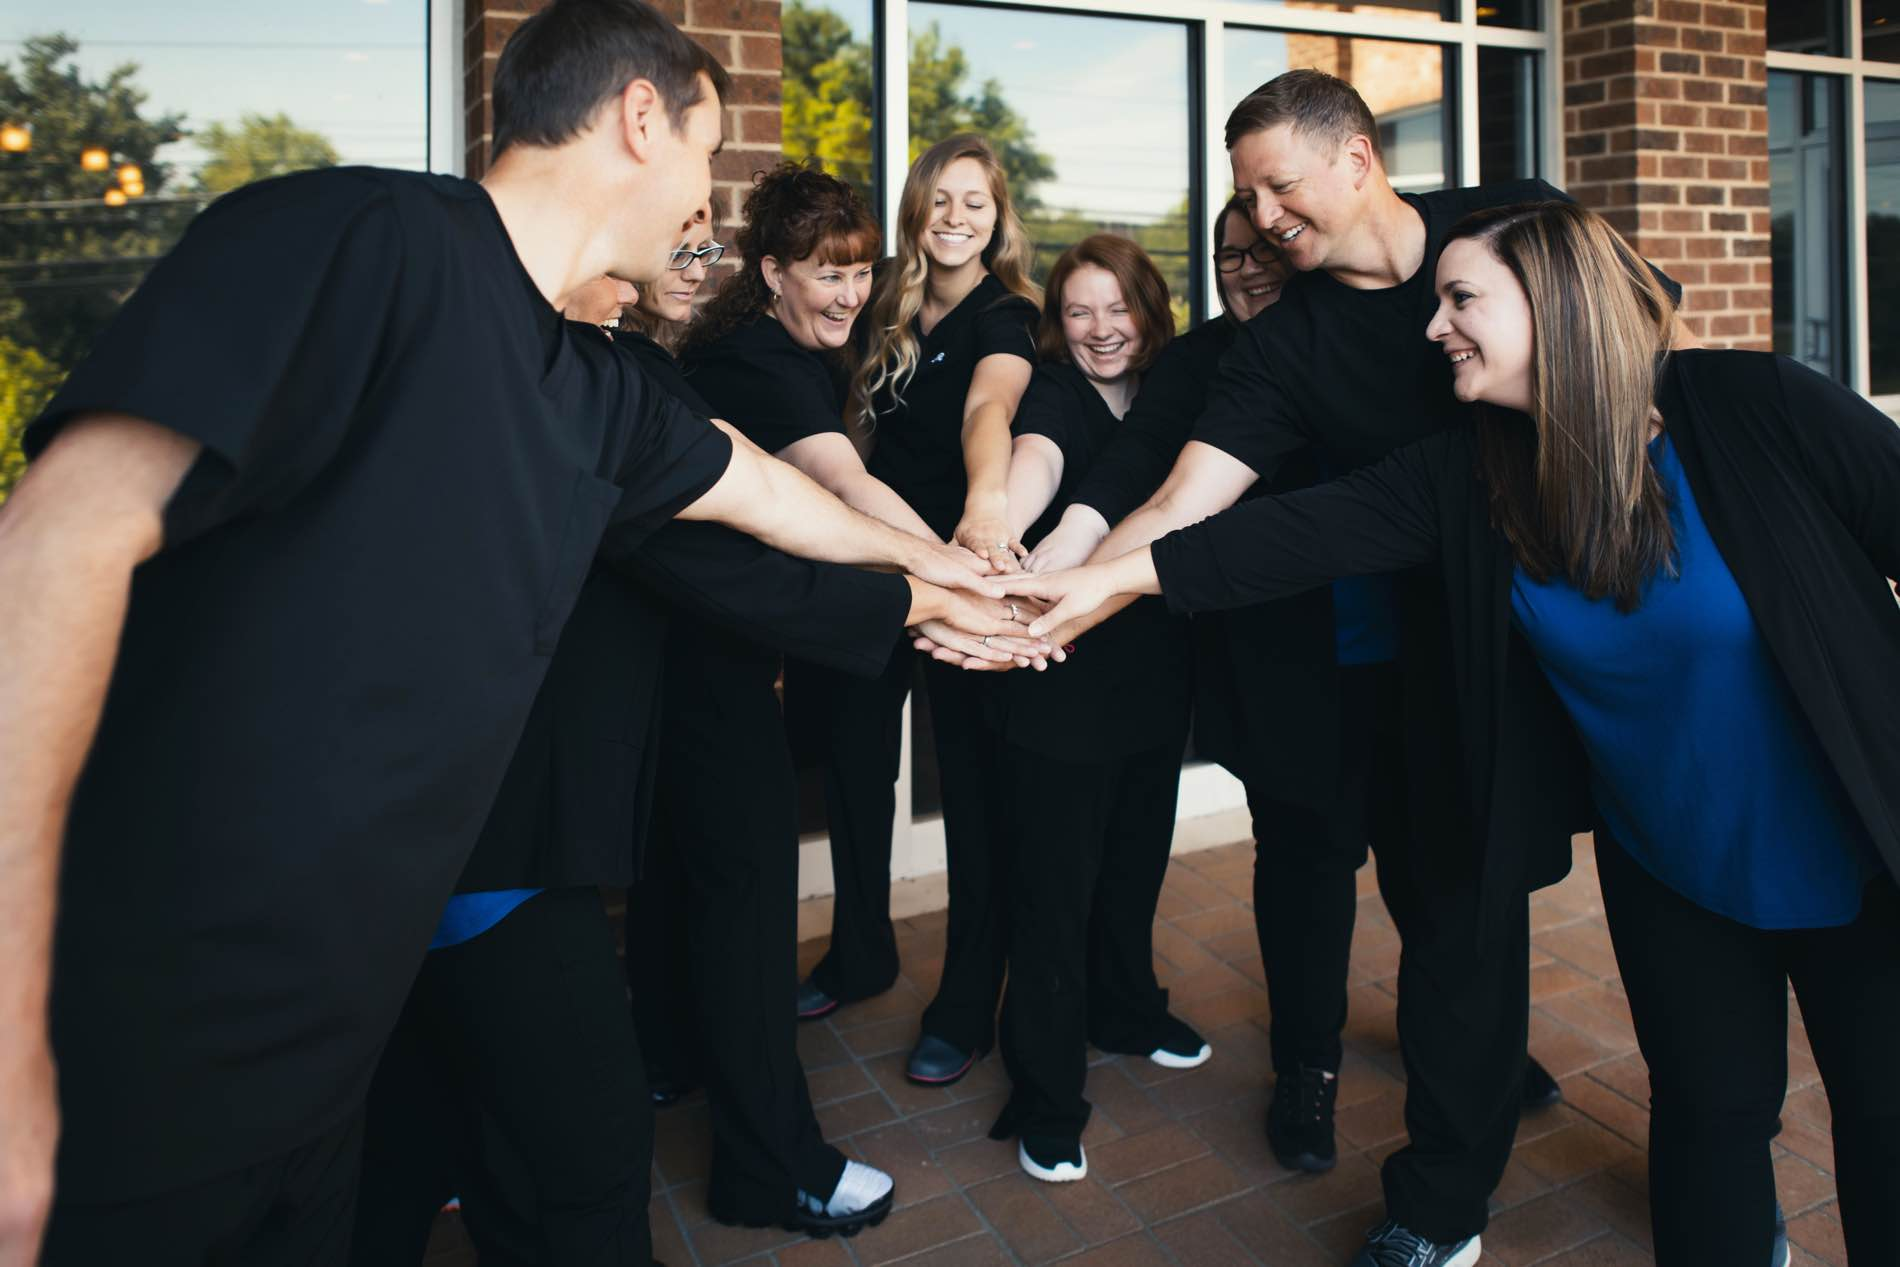 Photo of the Shenandoah team  in a circle with their hands together